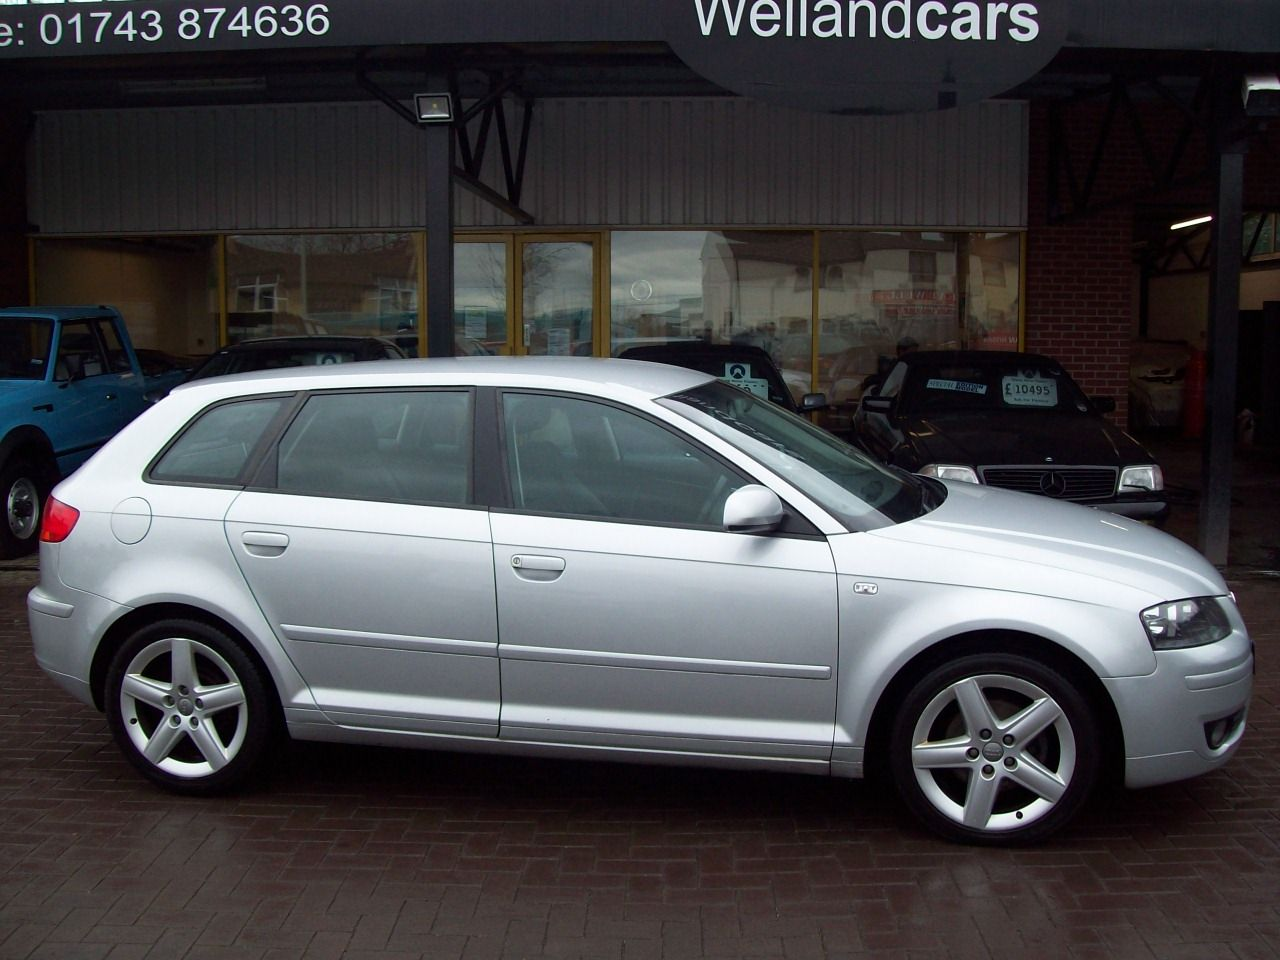 Audi A3 2.0 TDi Sportback  5dr 6 Speed Manual Diesel,1 Previous Owner, A/C, F/S/H Hatchback Diesel Silver at Welland Cars Shrewsbury